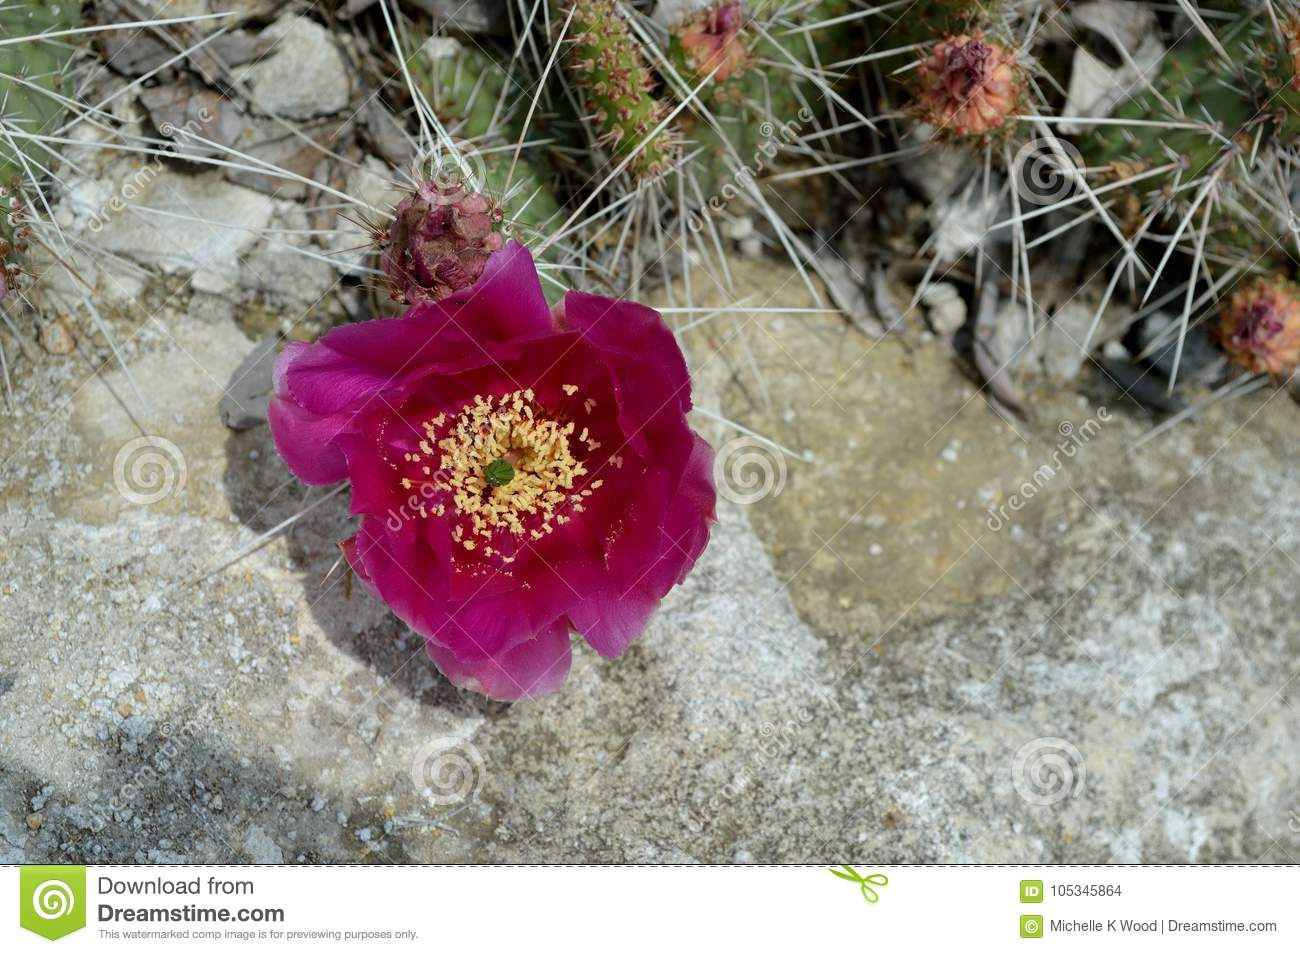 Red Cholla Cactus Blossom in Rock Garden